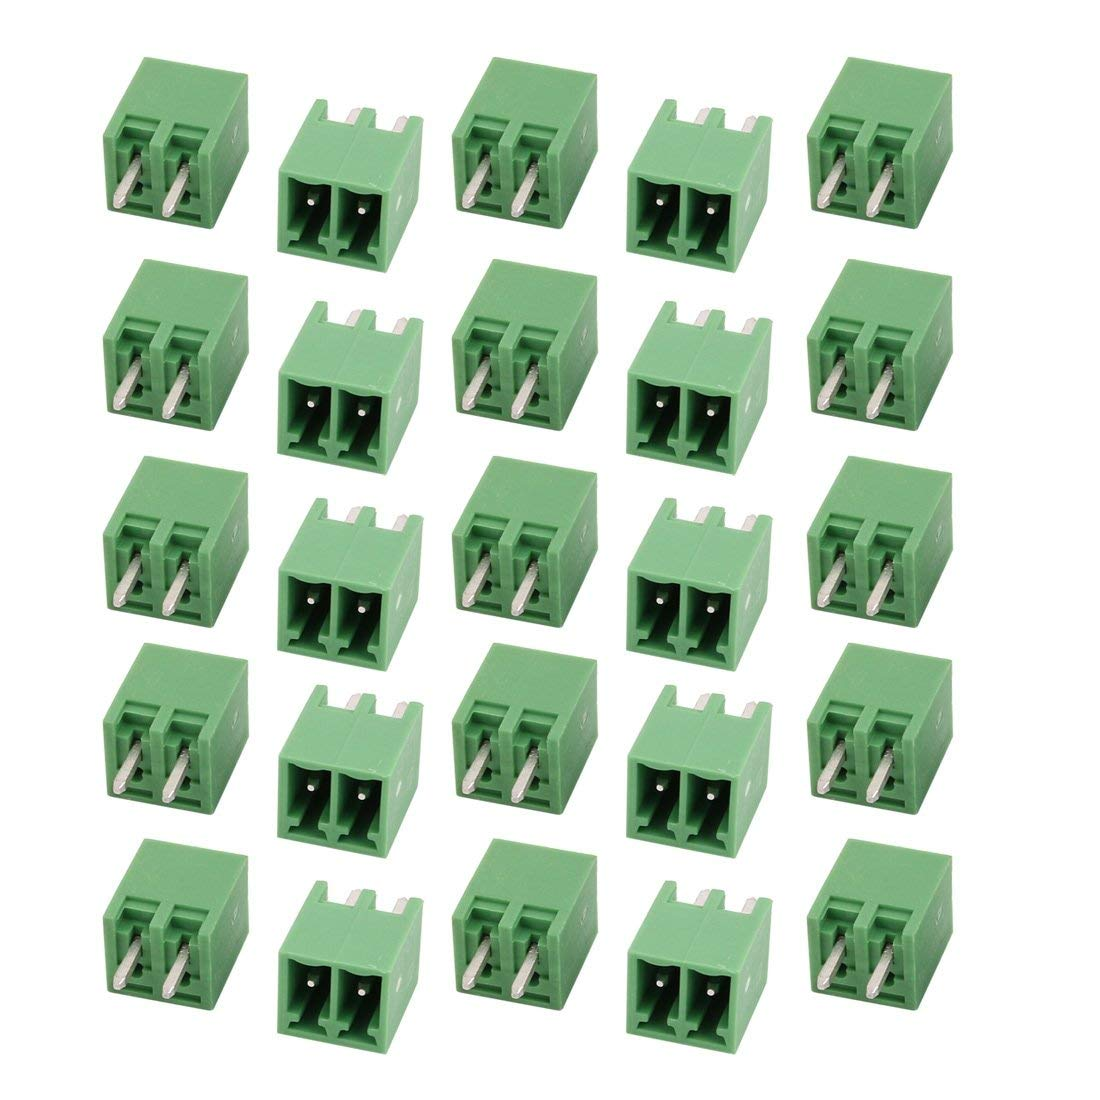 uxcell 25Pcs AC 300V 8A 3.5mm Pitch 2P Terminal Block Wire Connection for PCB Mounting